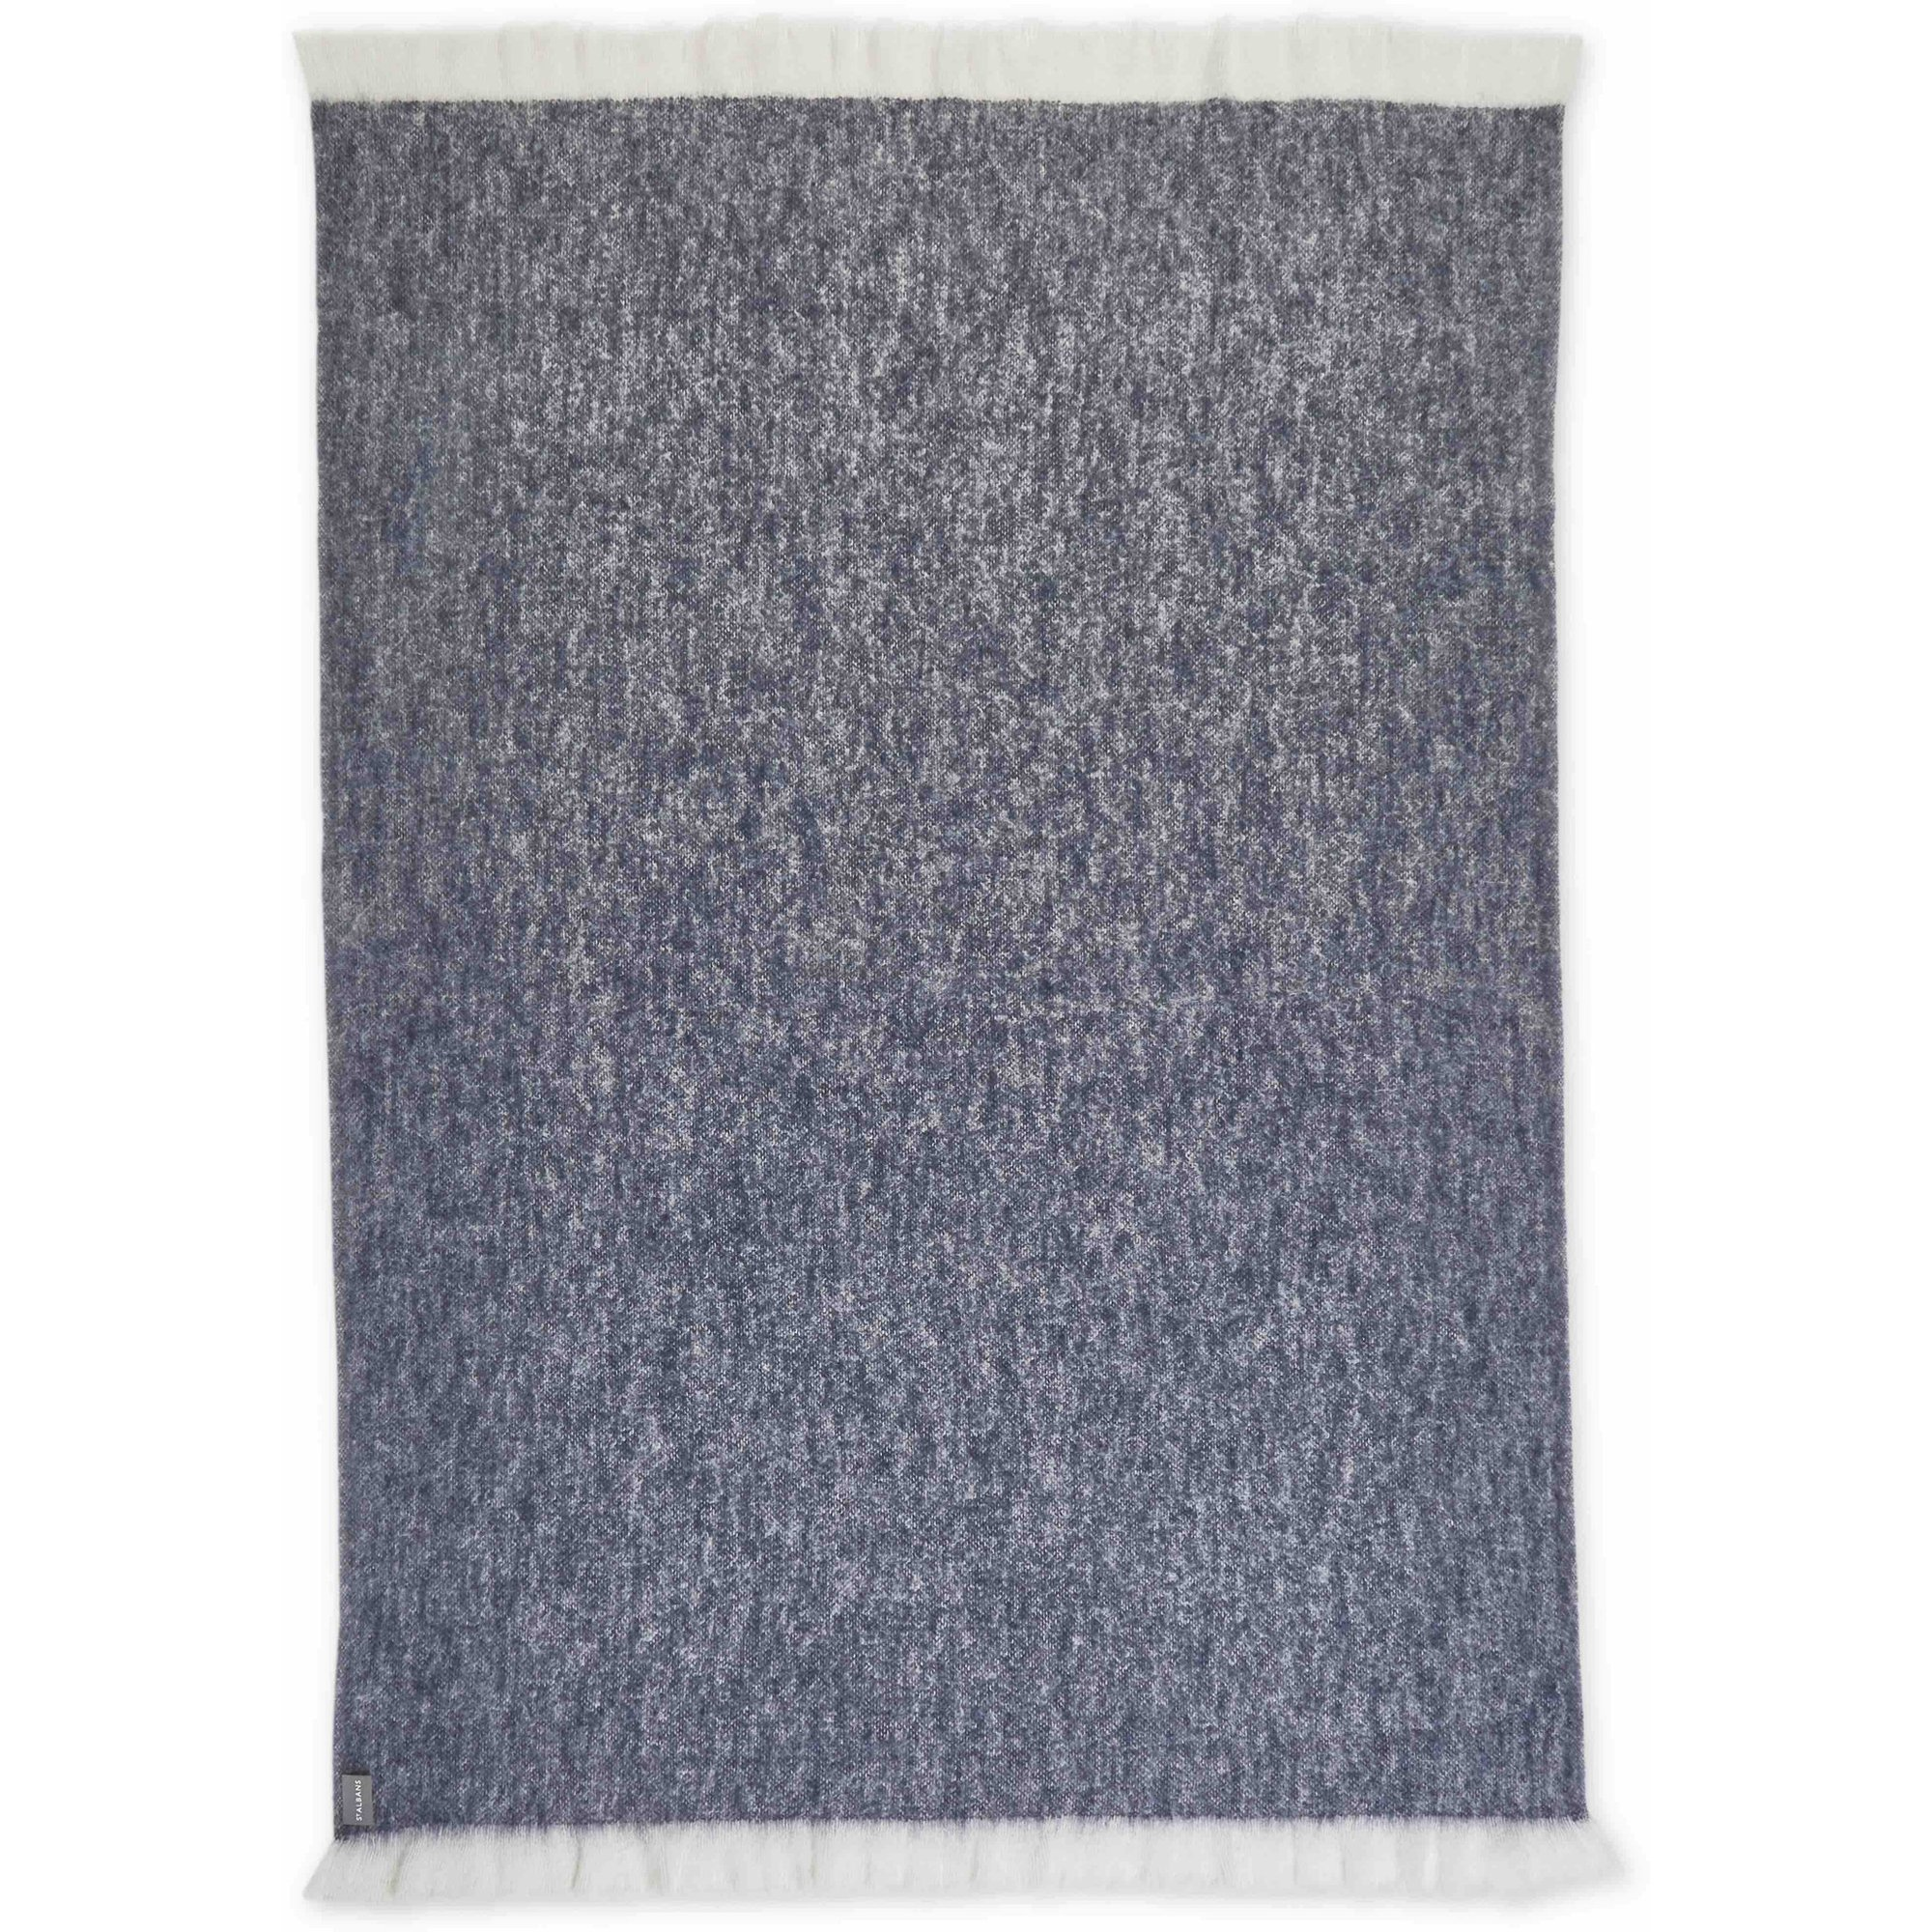 Mohair Woven Throw in Fleet